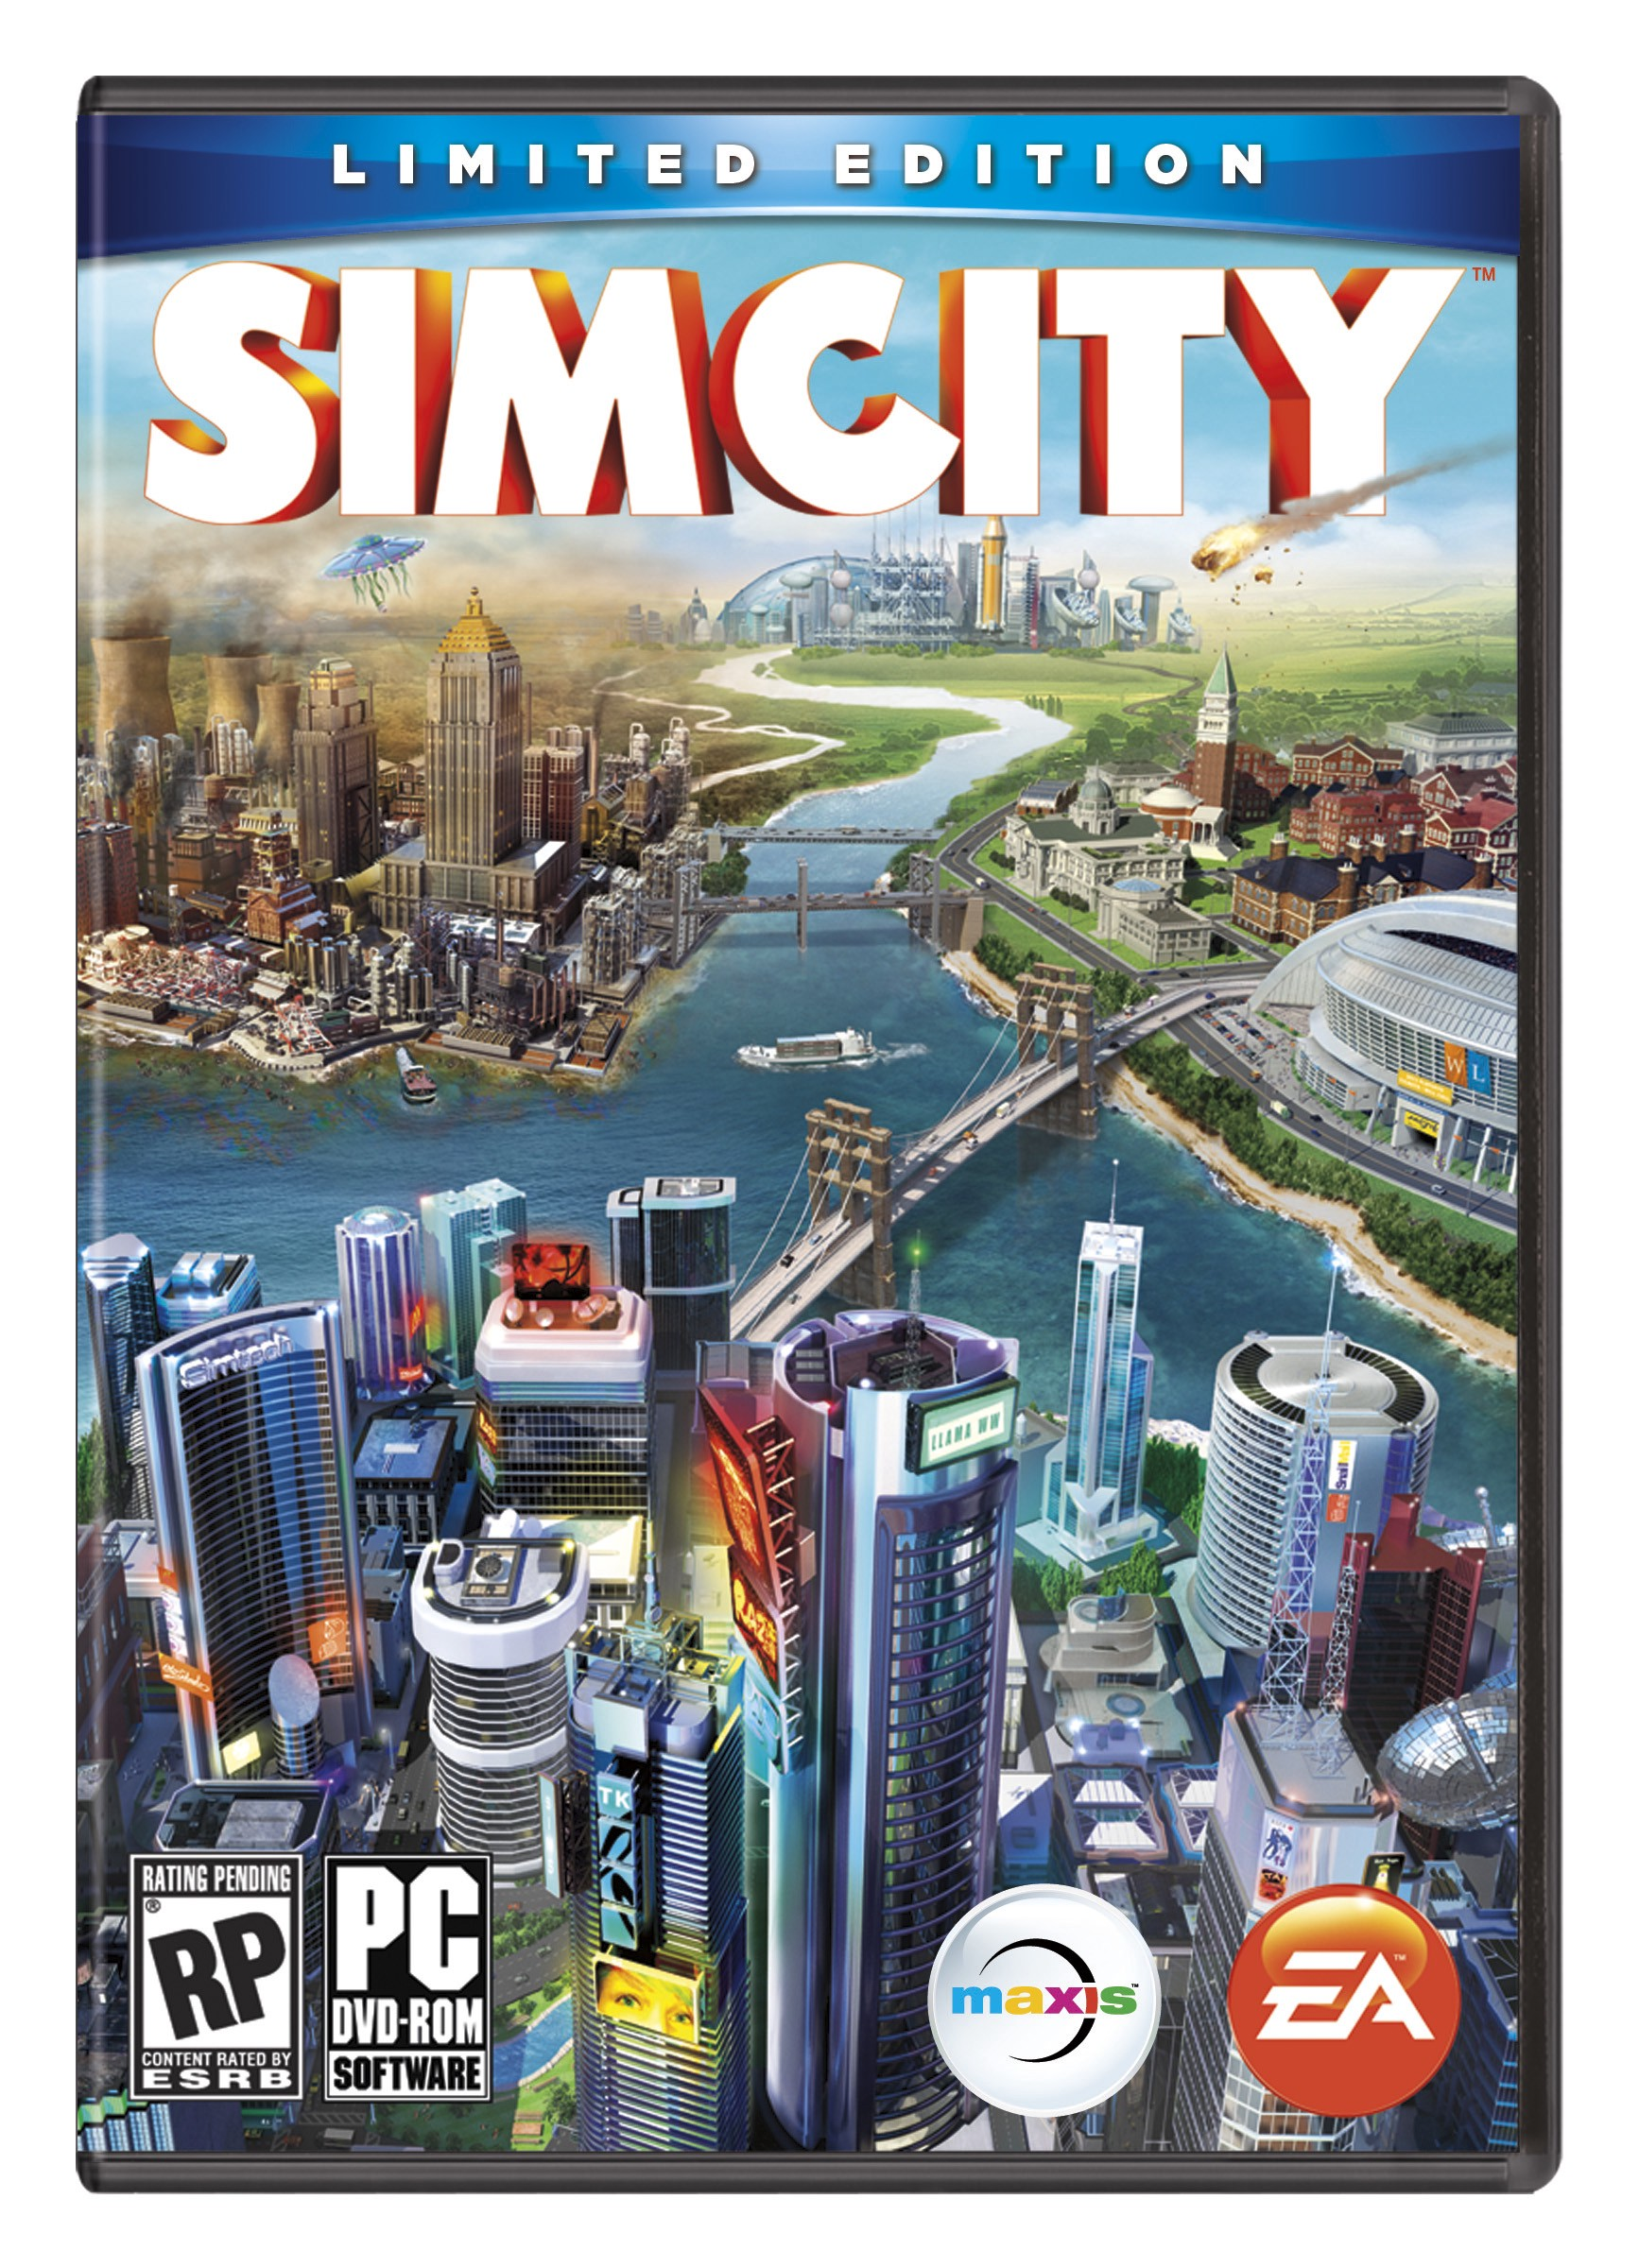 Timeline Of Simcity This Article Will Not Include Any By Cory Roberts Shinkansen Retrogaming Medium